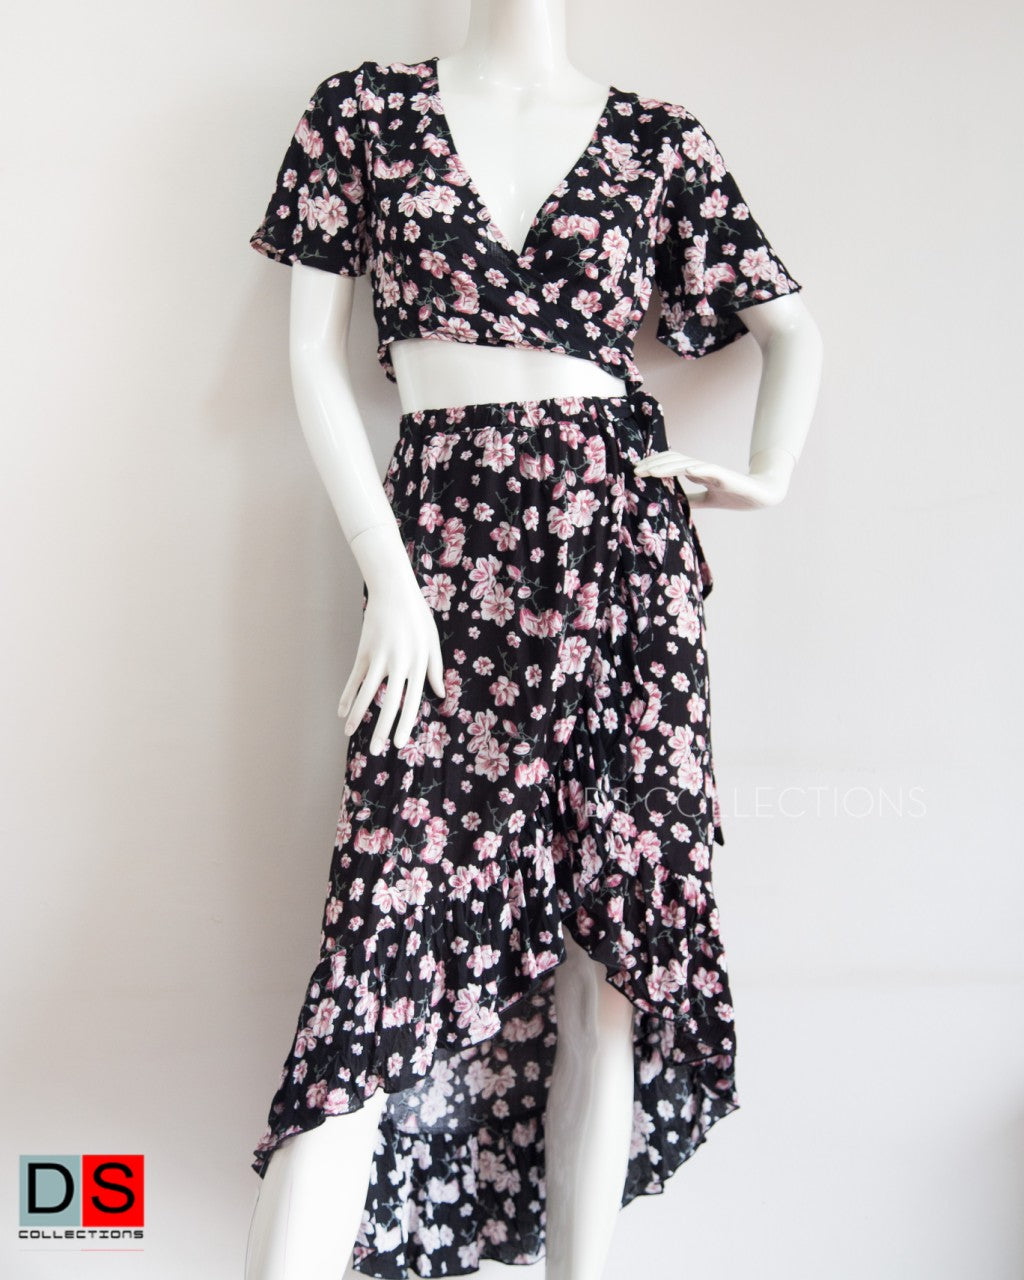 Women's Set - Floral Top And Skirt Set | DS Collections Nepal